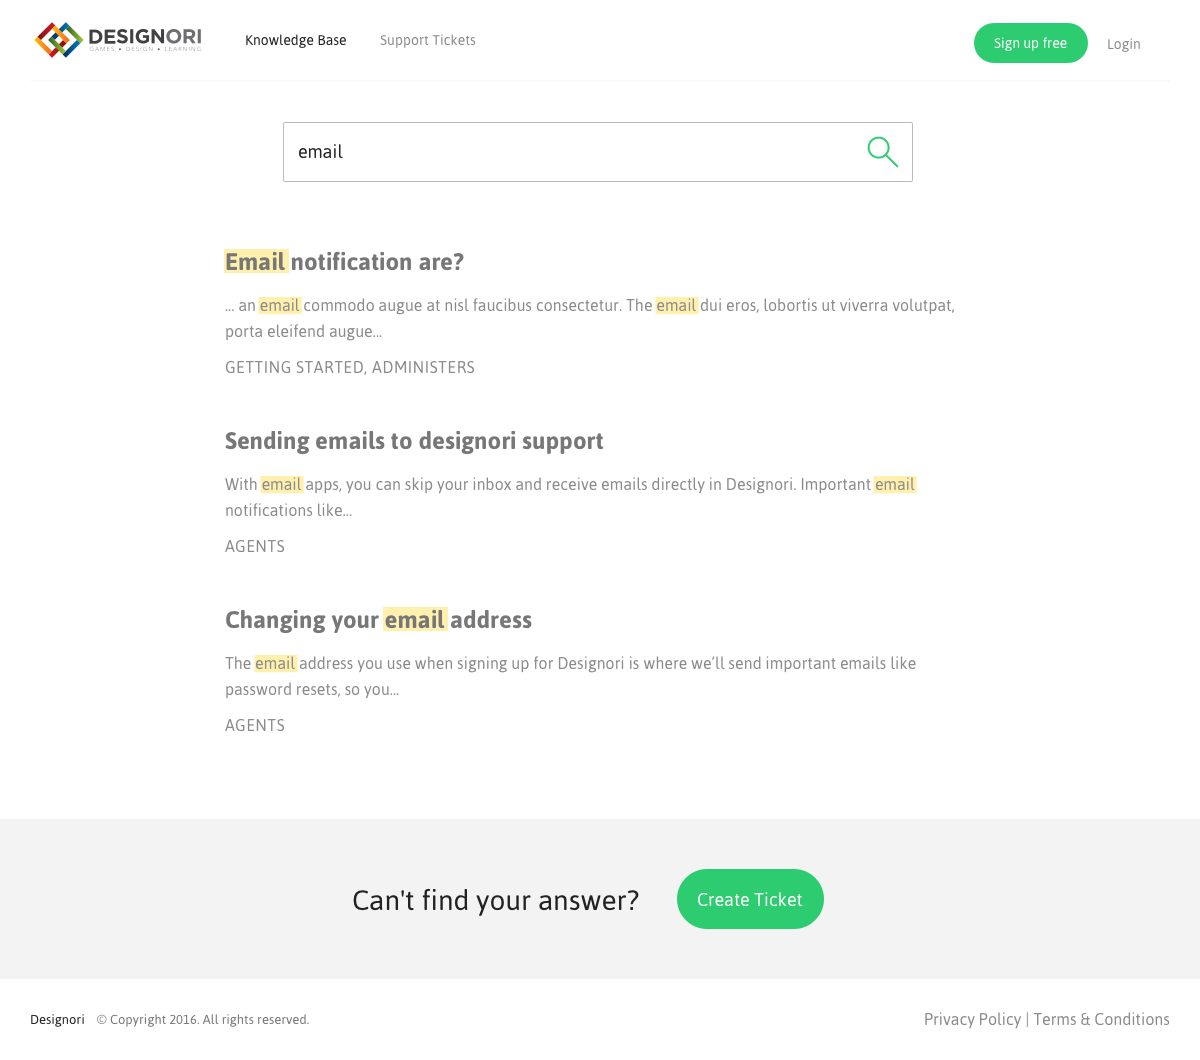 Support site knowledge base 01